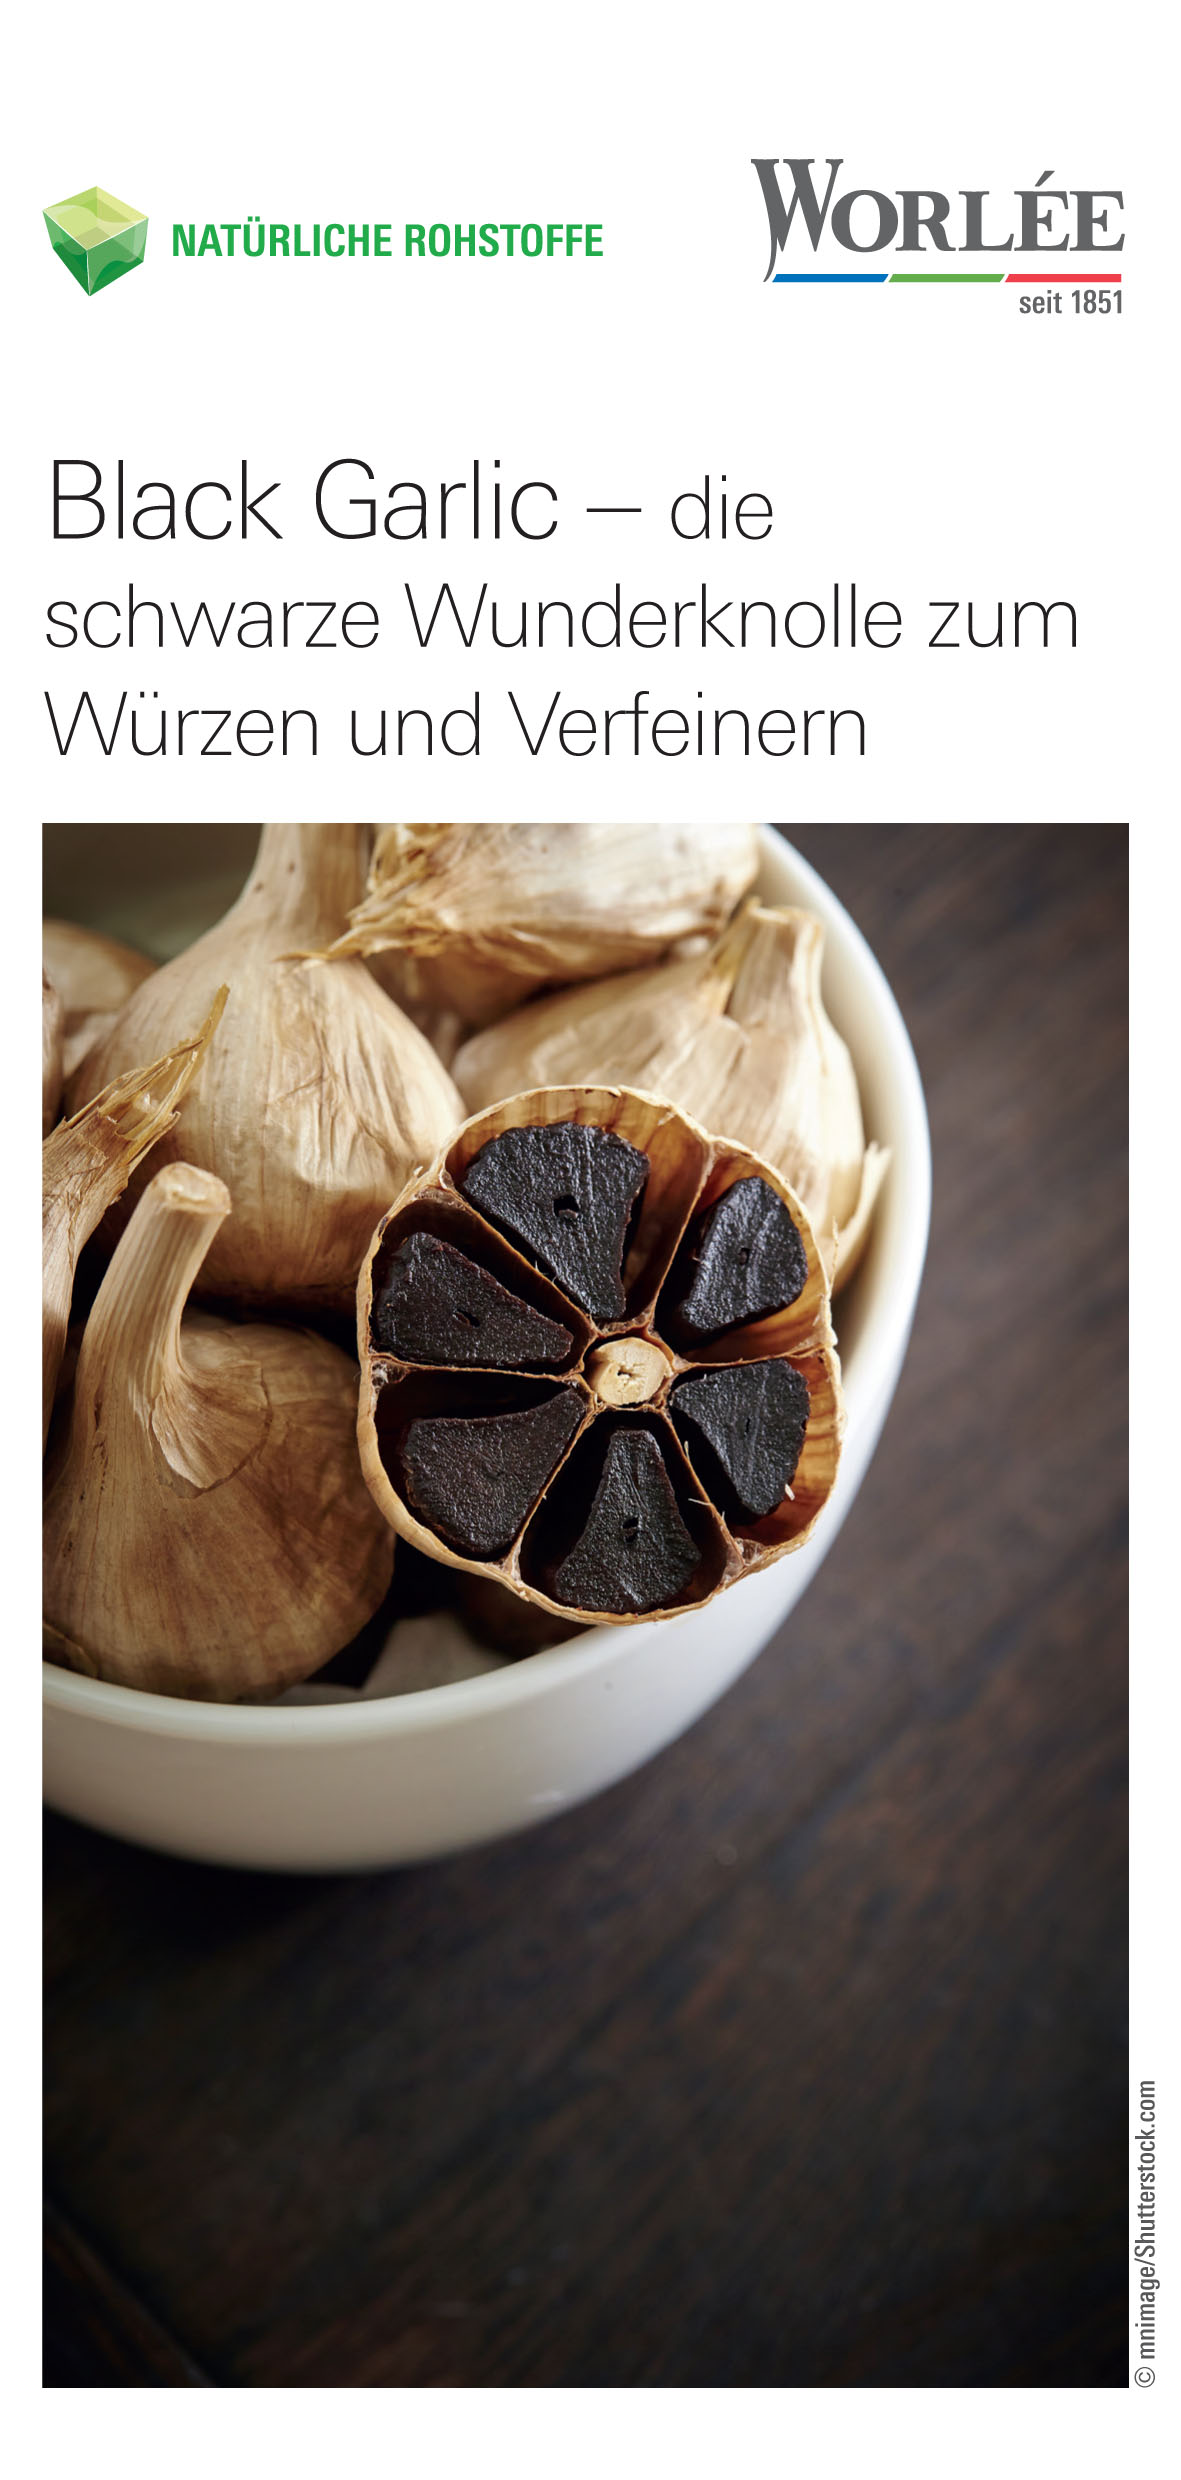 Worlée Black Garlic Flyer